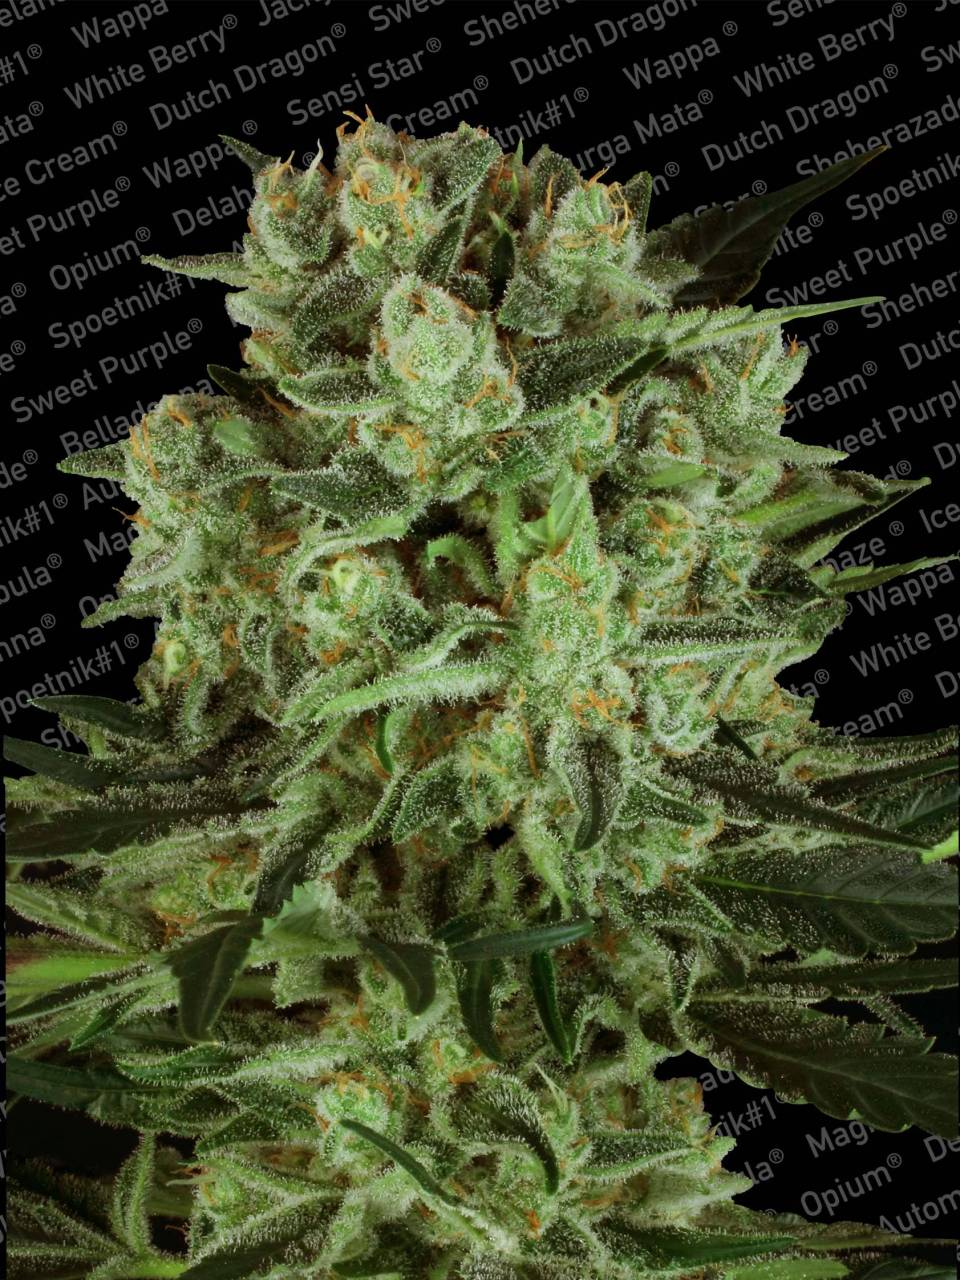 Durga Mata CBD+ (Medicinal) - Mama Earth… In recent years we have invested in the research and development of new varieties that have medical cannabis qualities and Durga Mata ll CBD, which has been developed with the CBD crew, is one of these strains. We decided to use Durga Mata because it is one of our feminized strains that already has a reputation for producing big resinous buds that throw a thick fluffy blanket of indica relaxation around those that smoke it. The original Durga Mata was already a top choice for medical users, so we decided to enhance its medicinal powers.